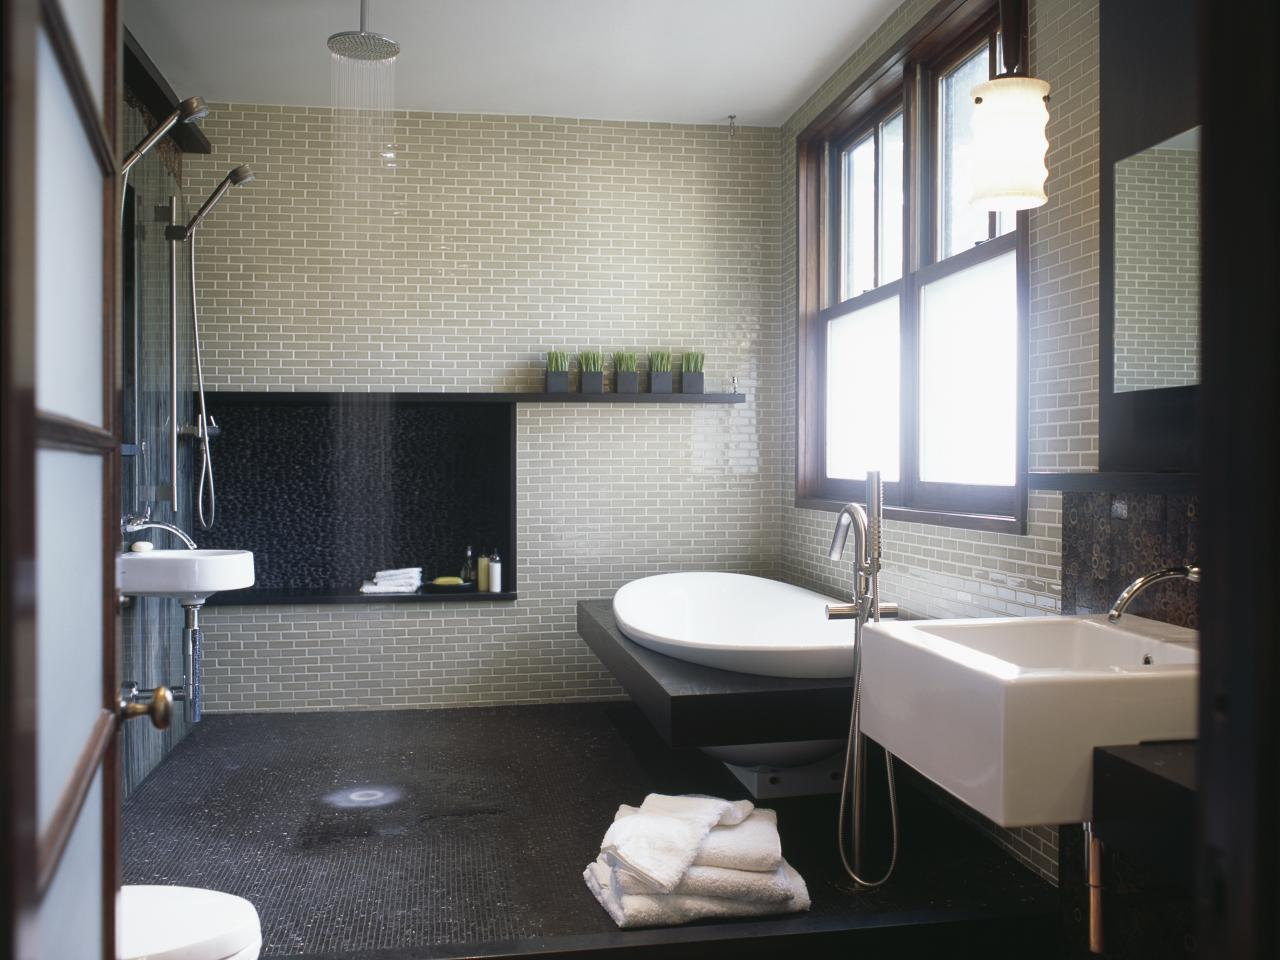 Four Methods of Deciding on an Very best Sanitary Ware for Your Renovated Toilet